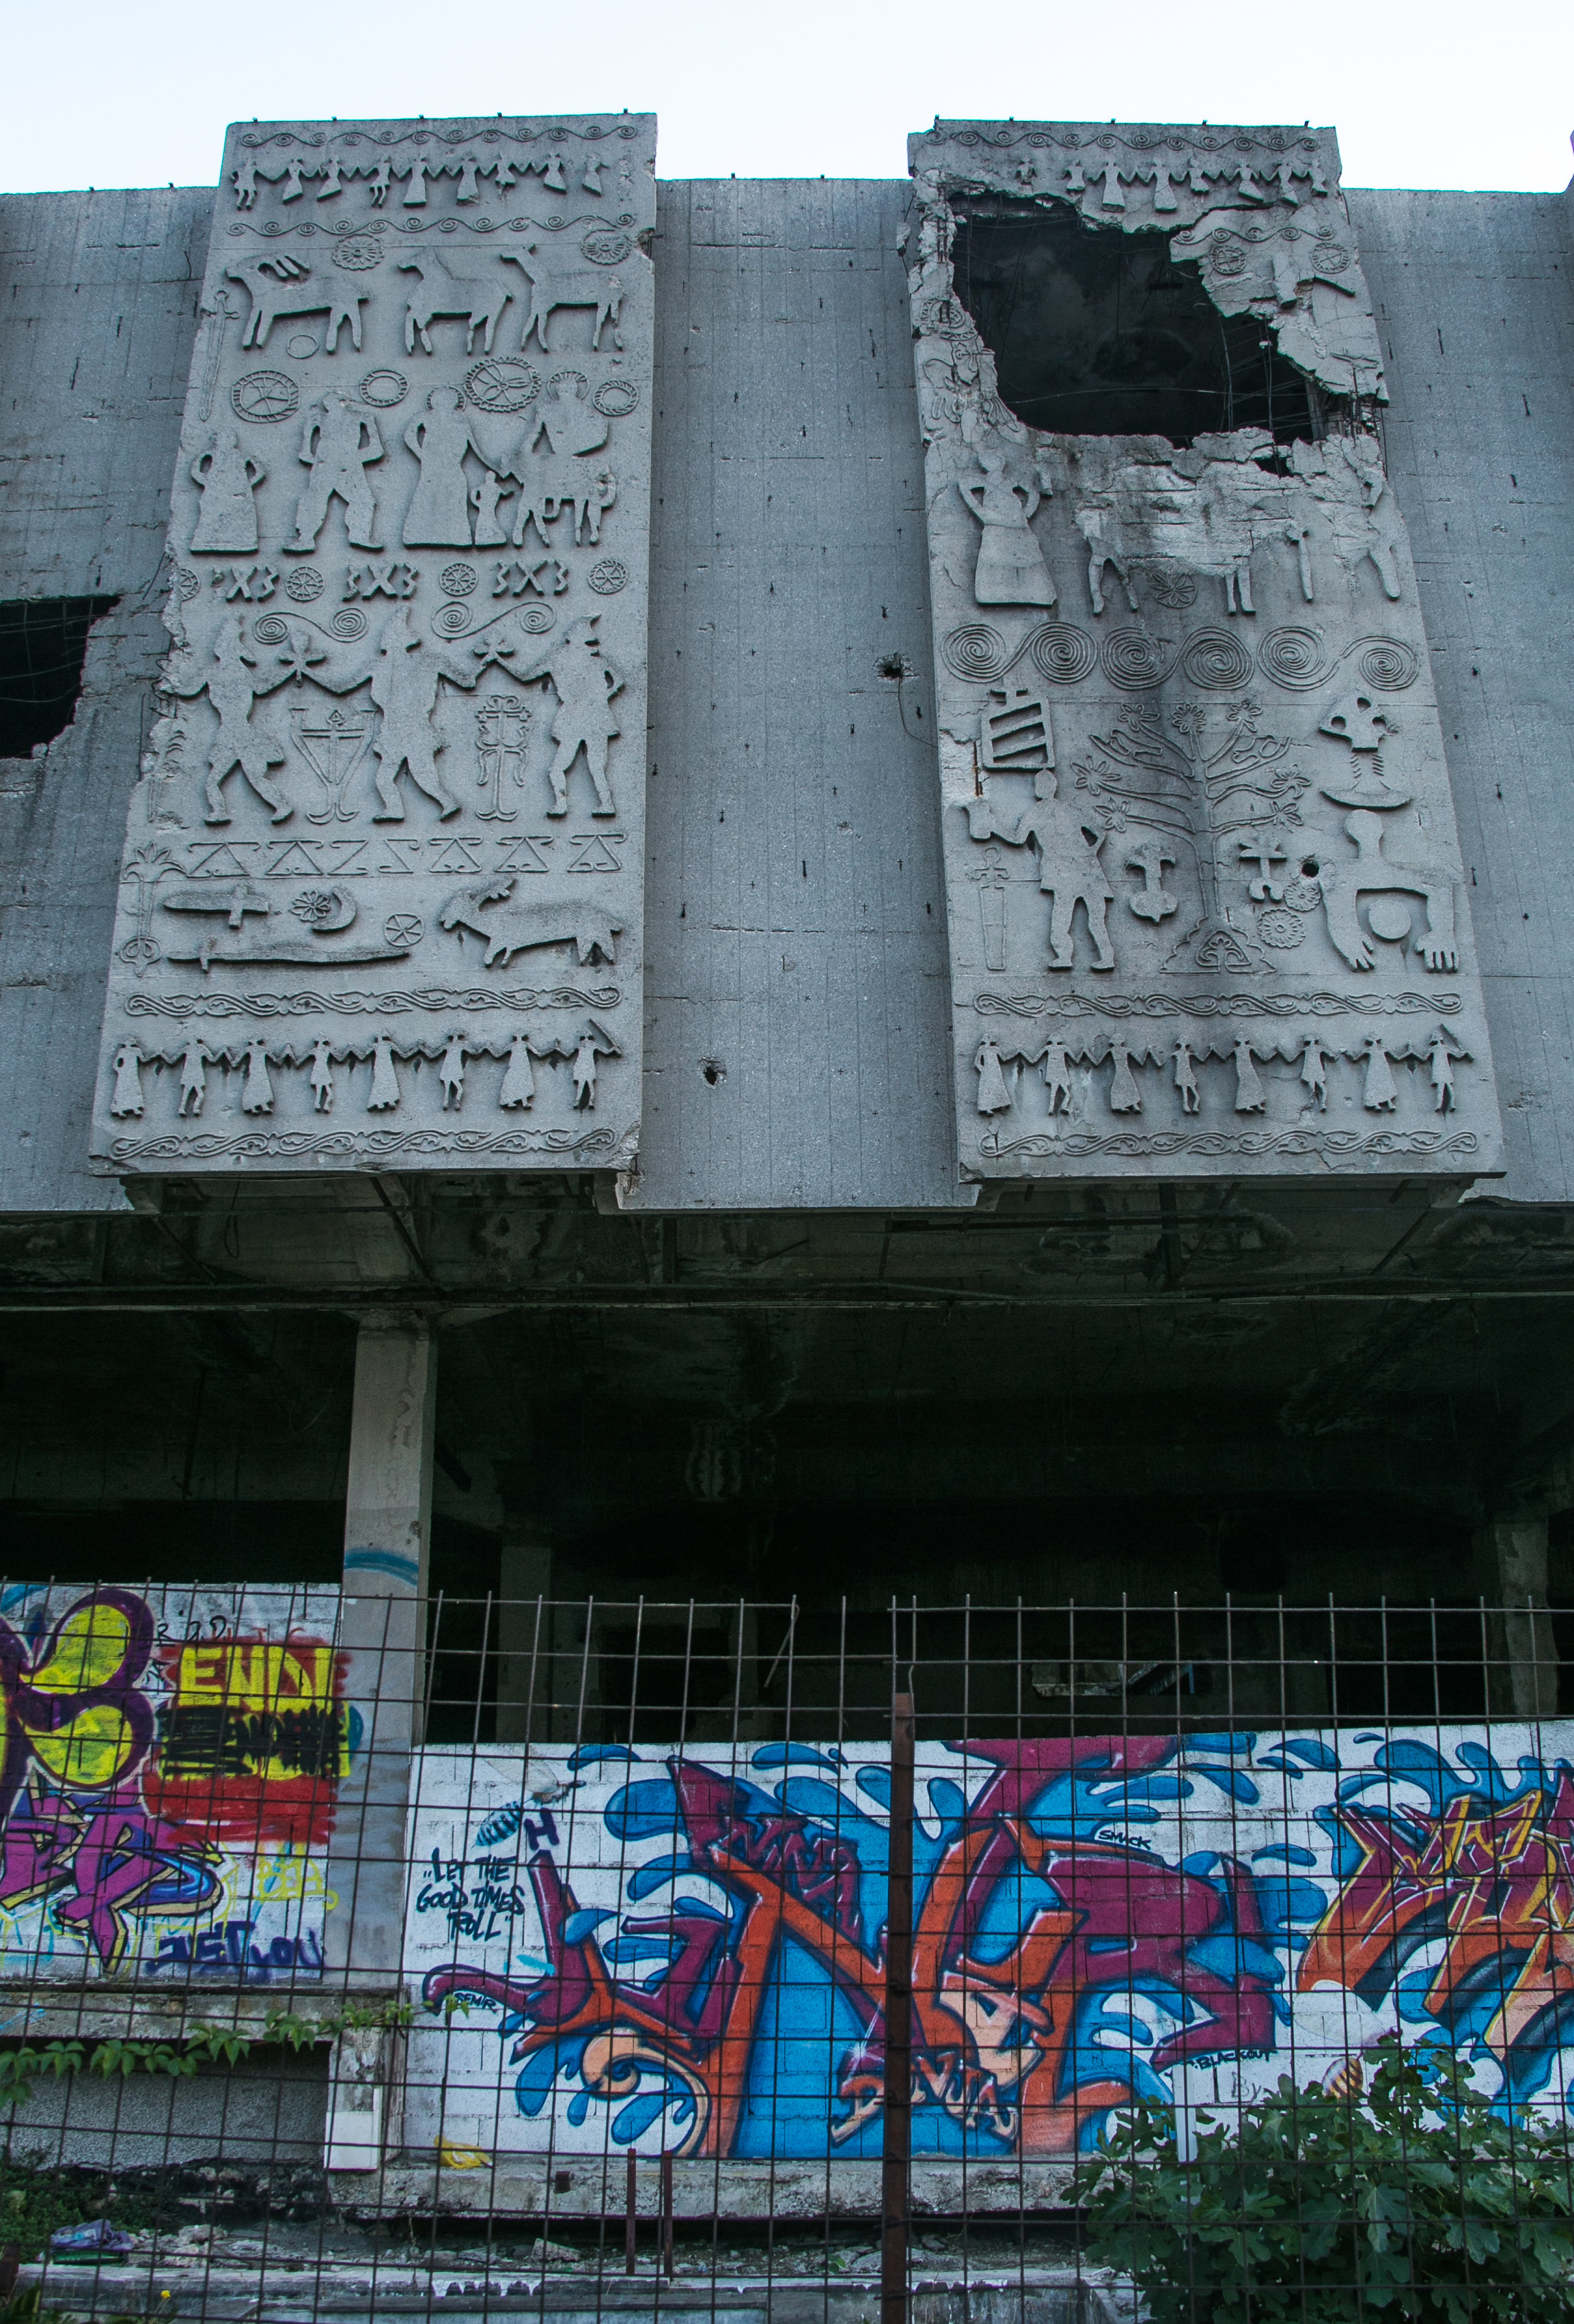 Graffiti tags on the side of a building damaged by missiles during the Bosnian War.